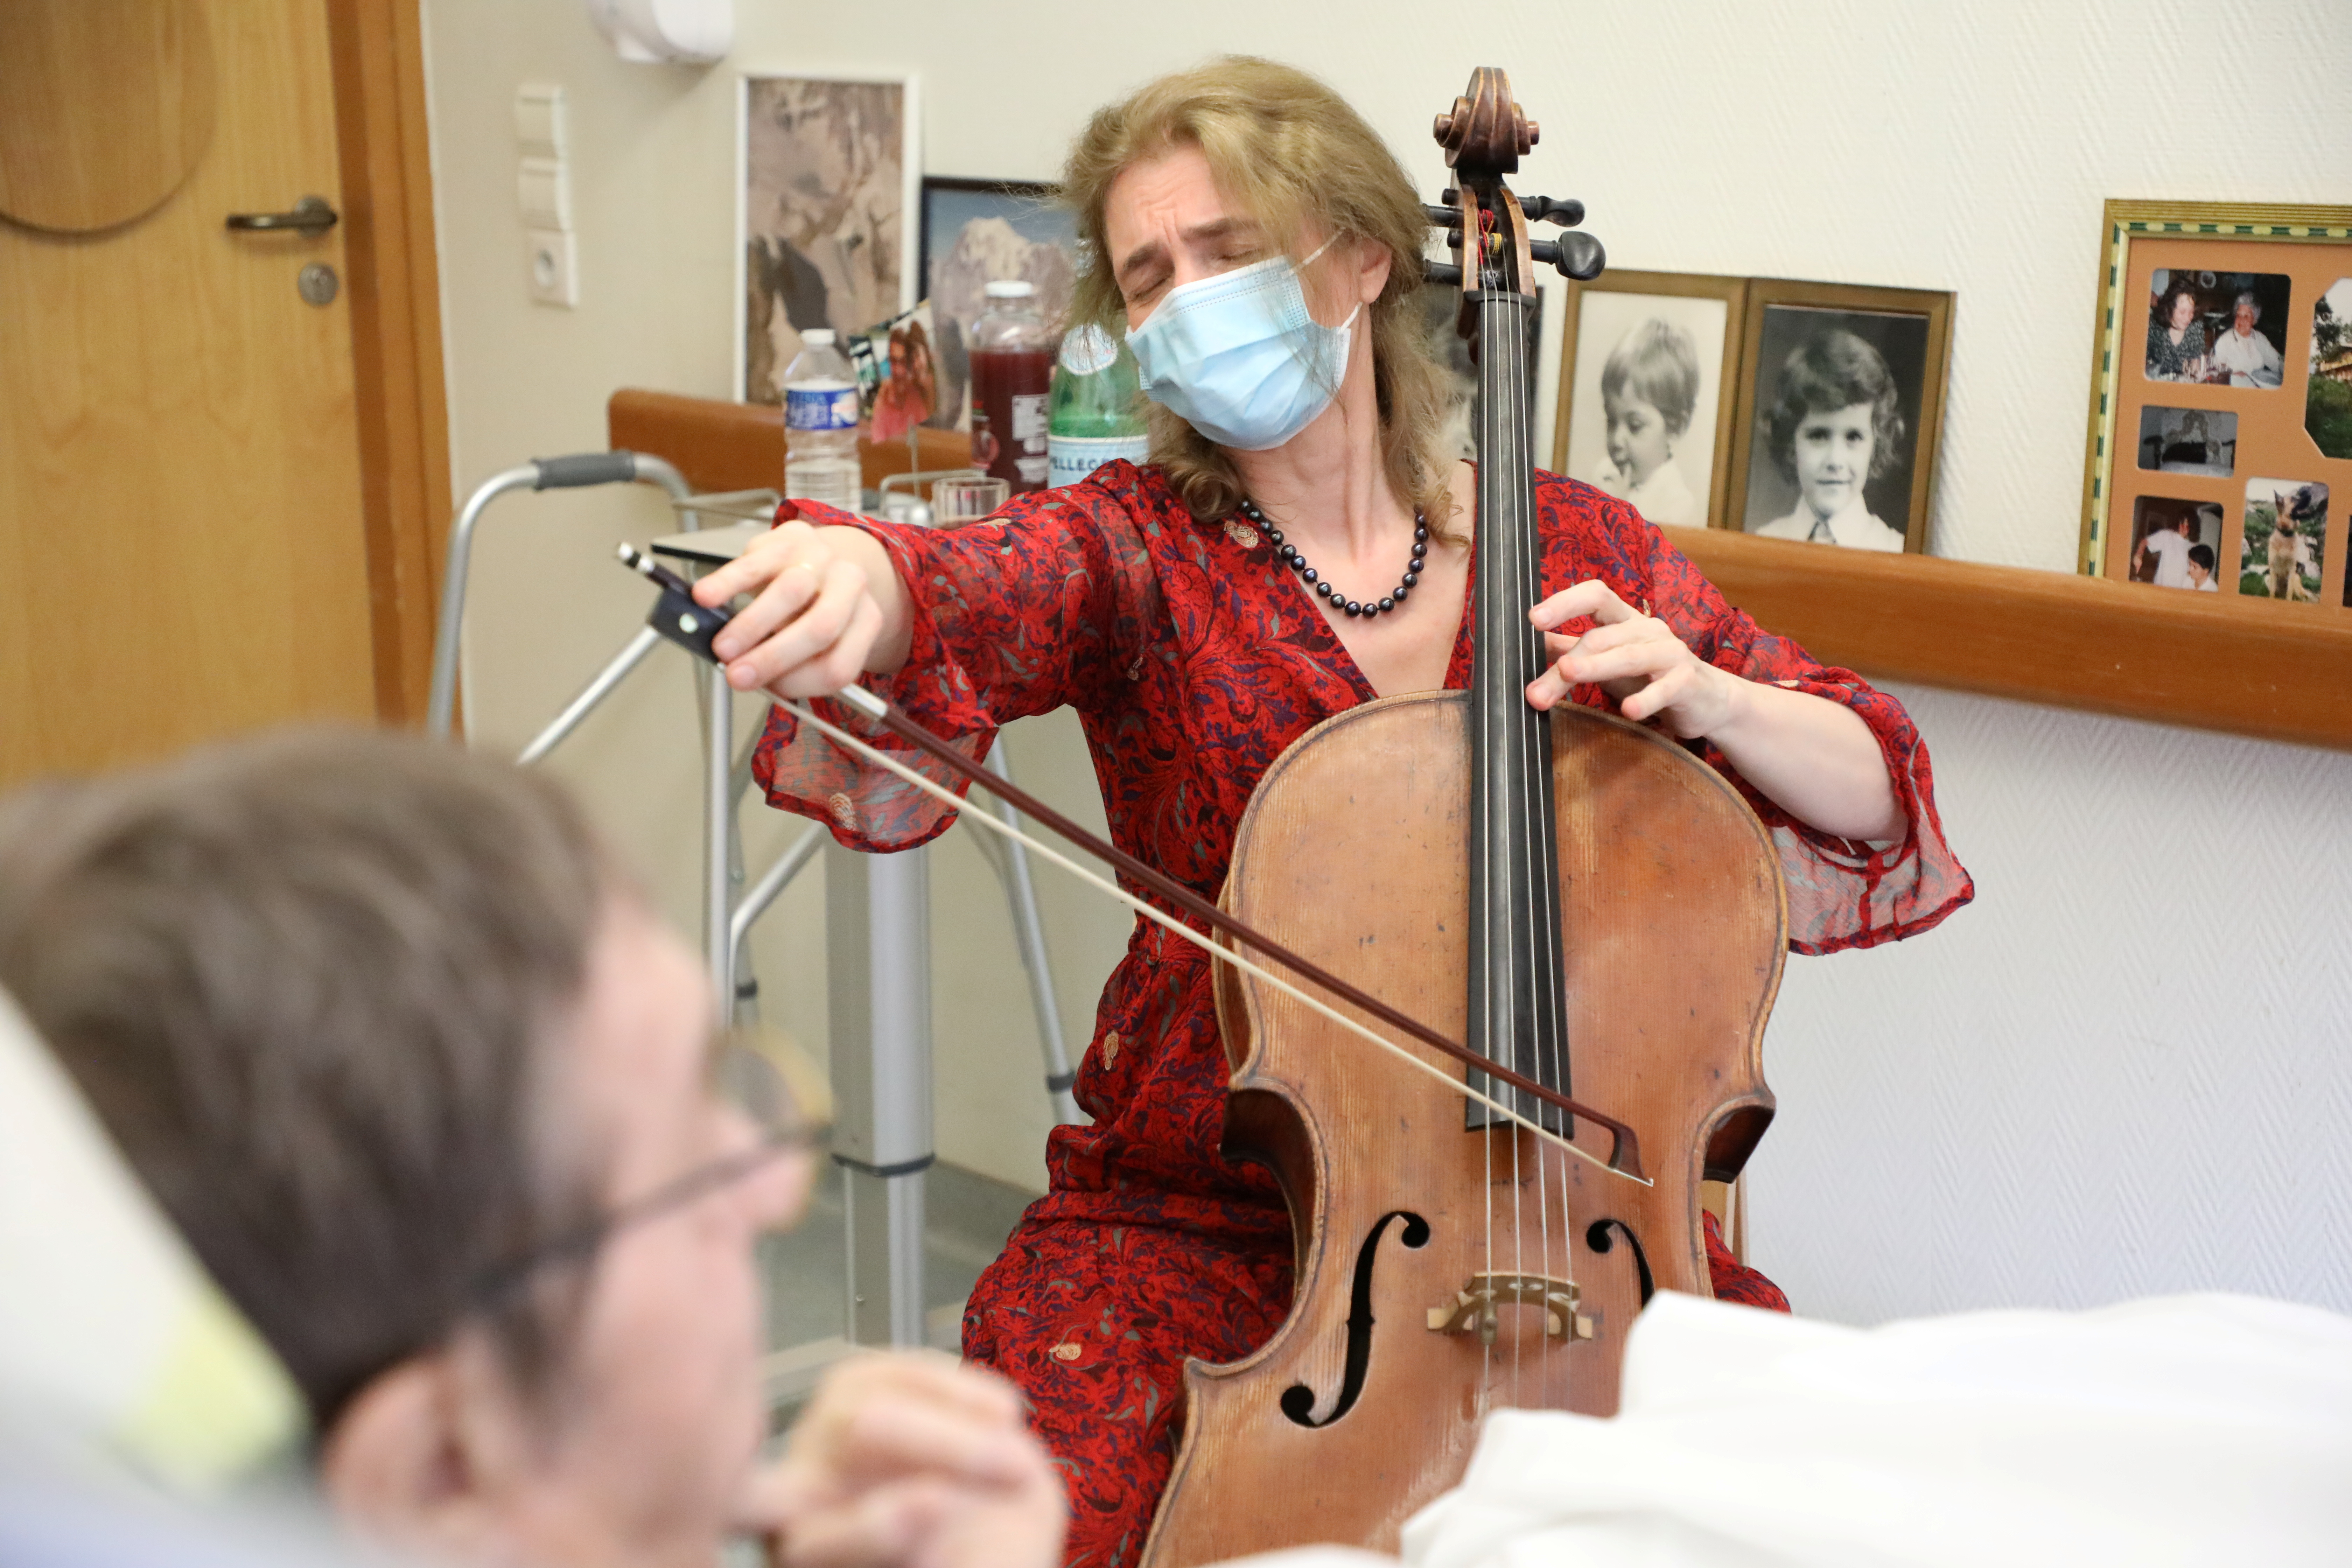 'Music soothes pain': Paris cellist plays for end-of-life patients